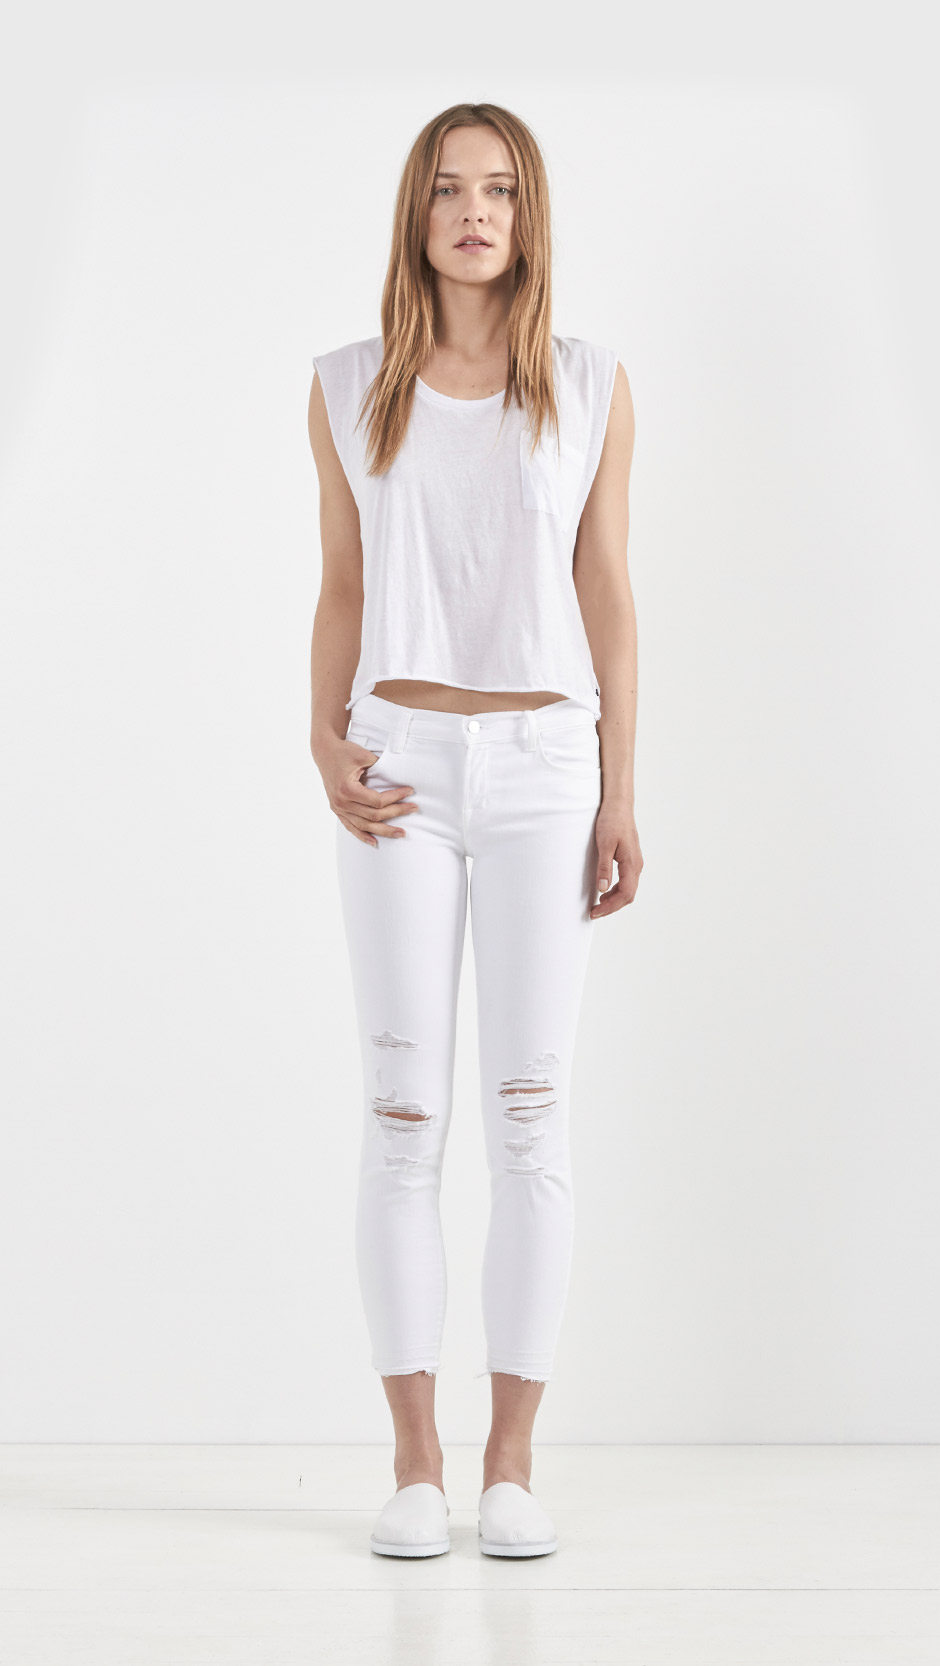 c0582691c50b J Brand Low Rise Crop Jeans Demented White Distressed - The Best ...